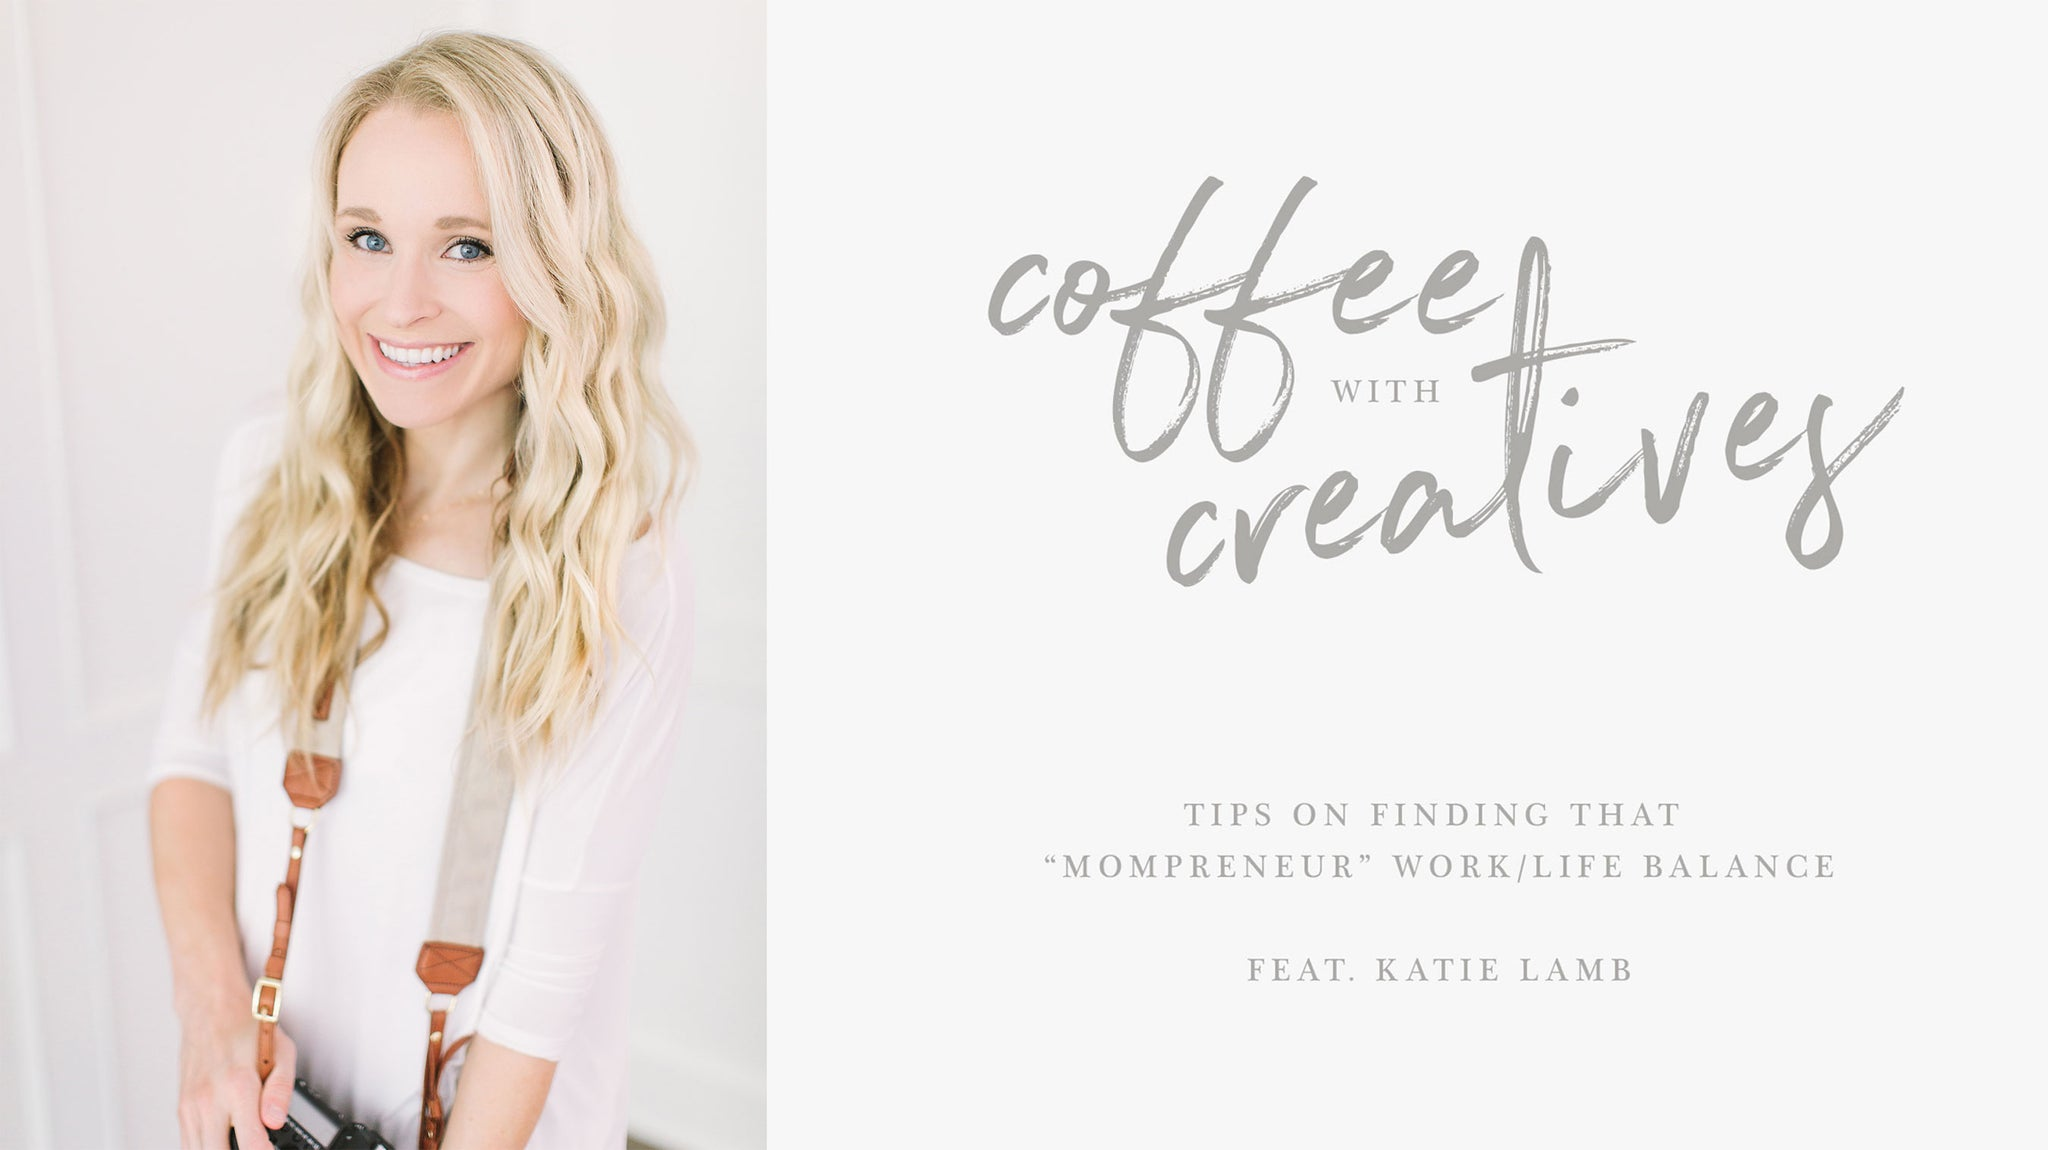 Professional portrait photographer and mother of twins, Katie Lamb, shares her tips and tricks on how to find balance as a creative entrepreneur and mom (a.k.a mompreneur)!